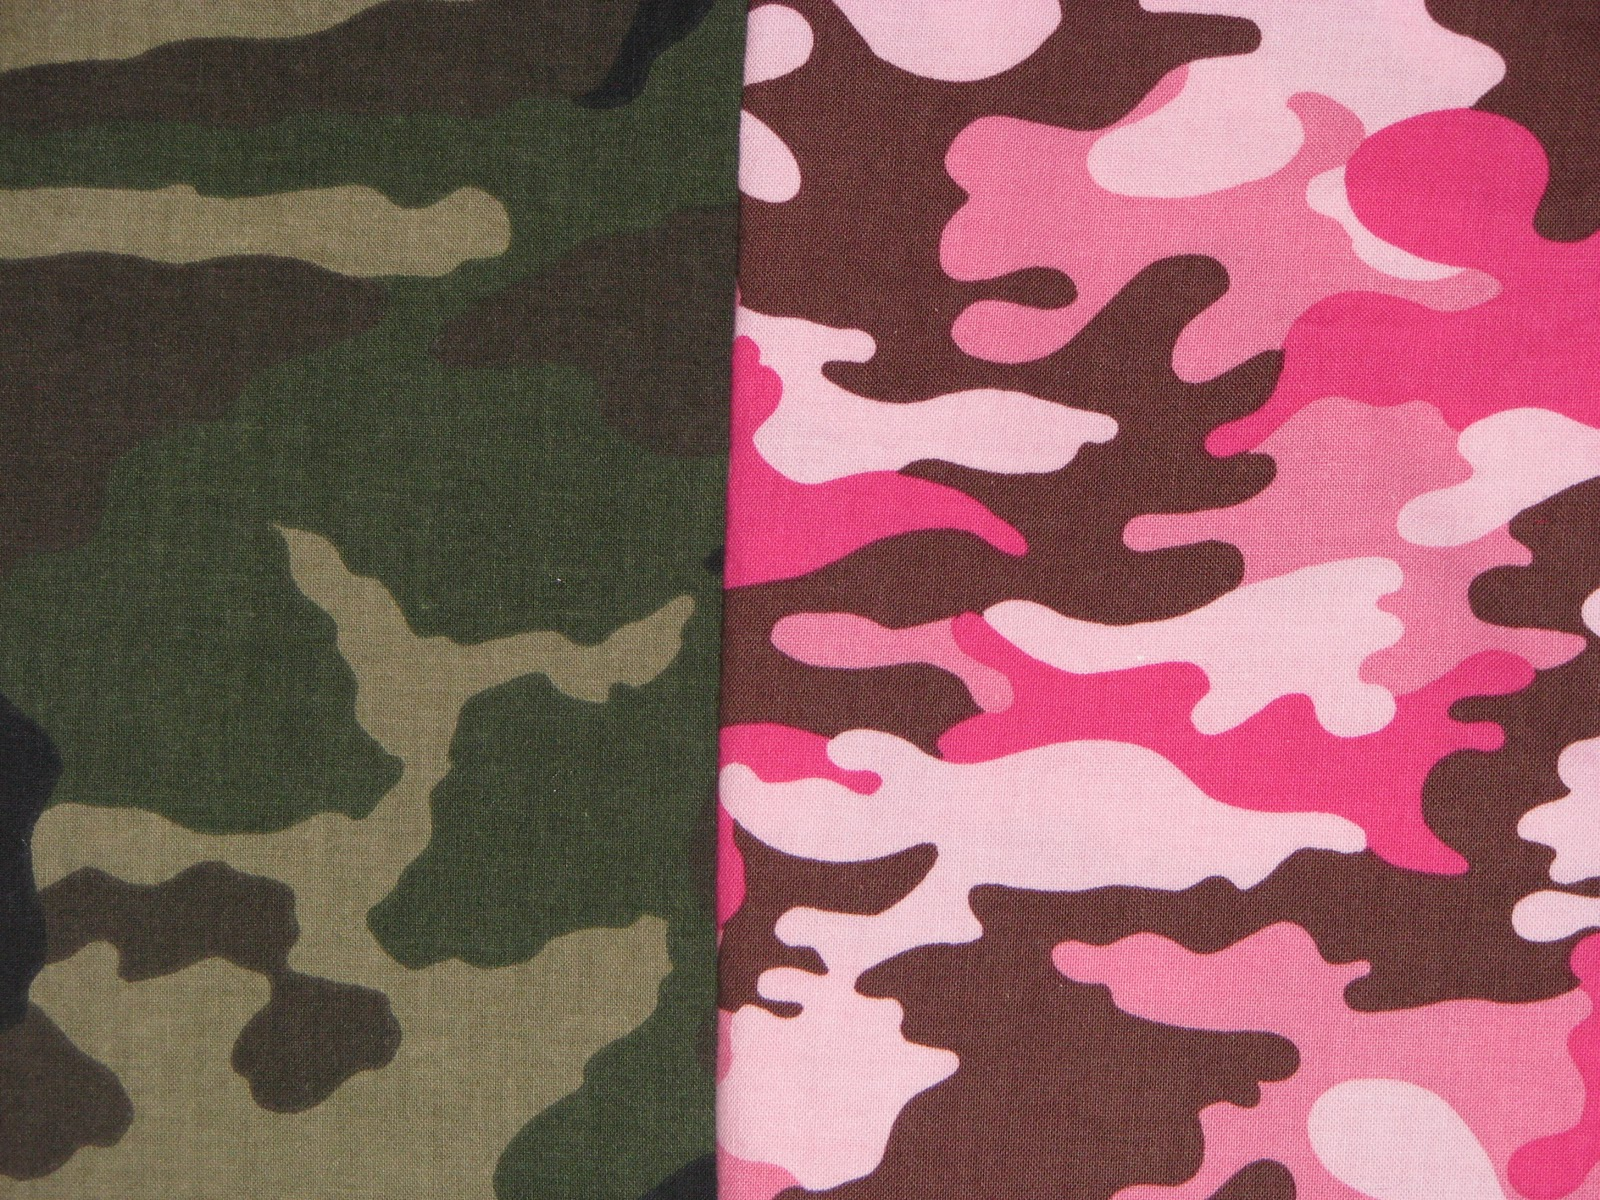 17 best ideas about Camo Wallpaper on Pinterest